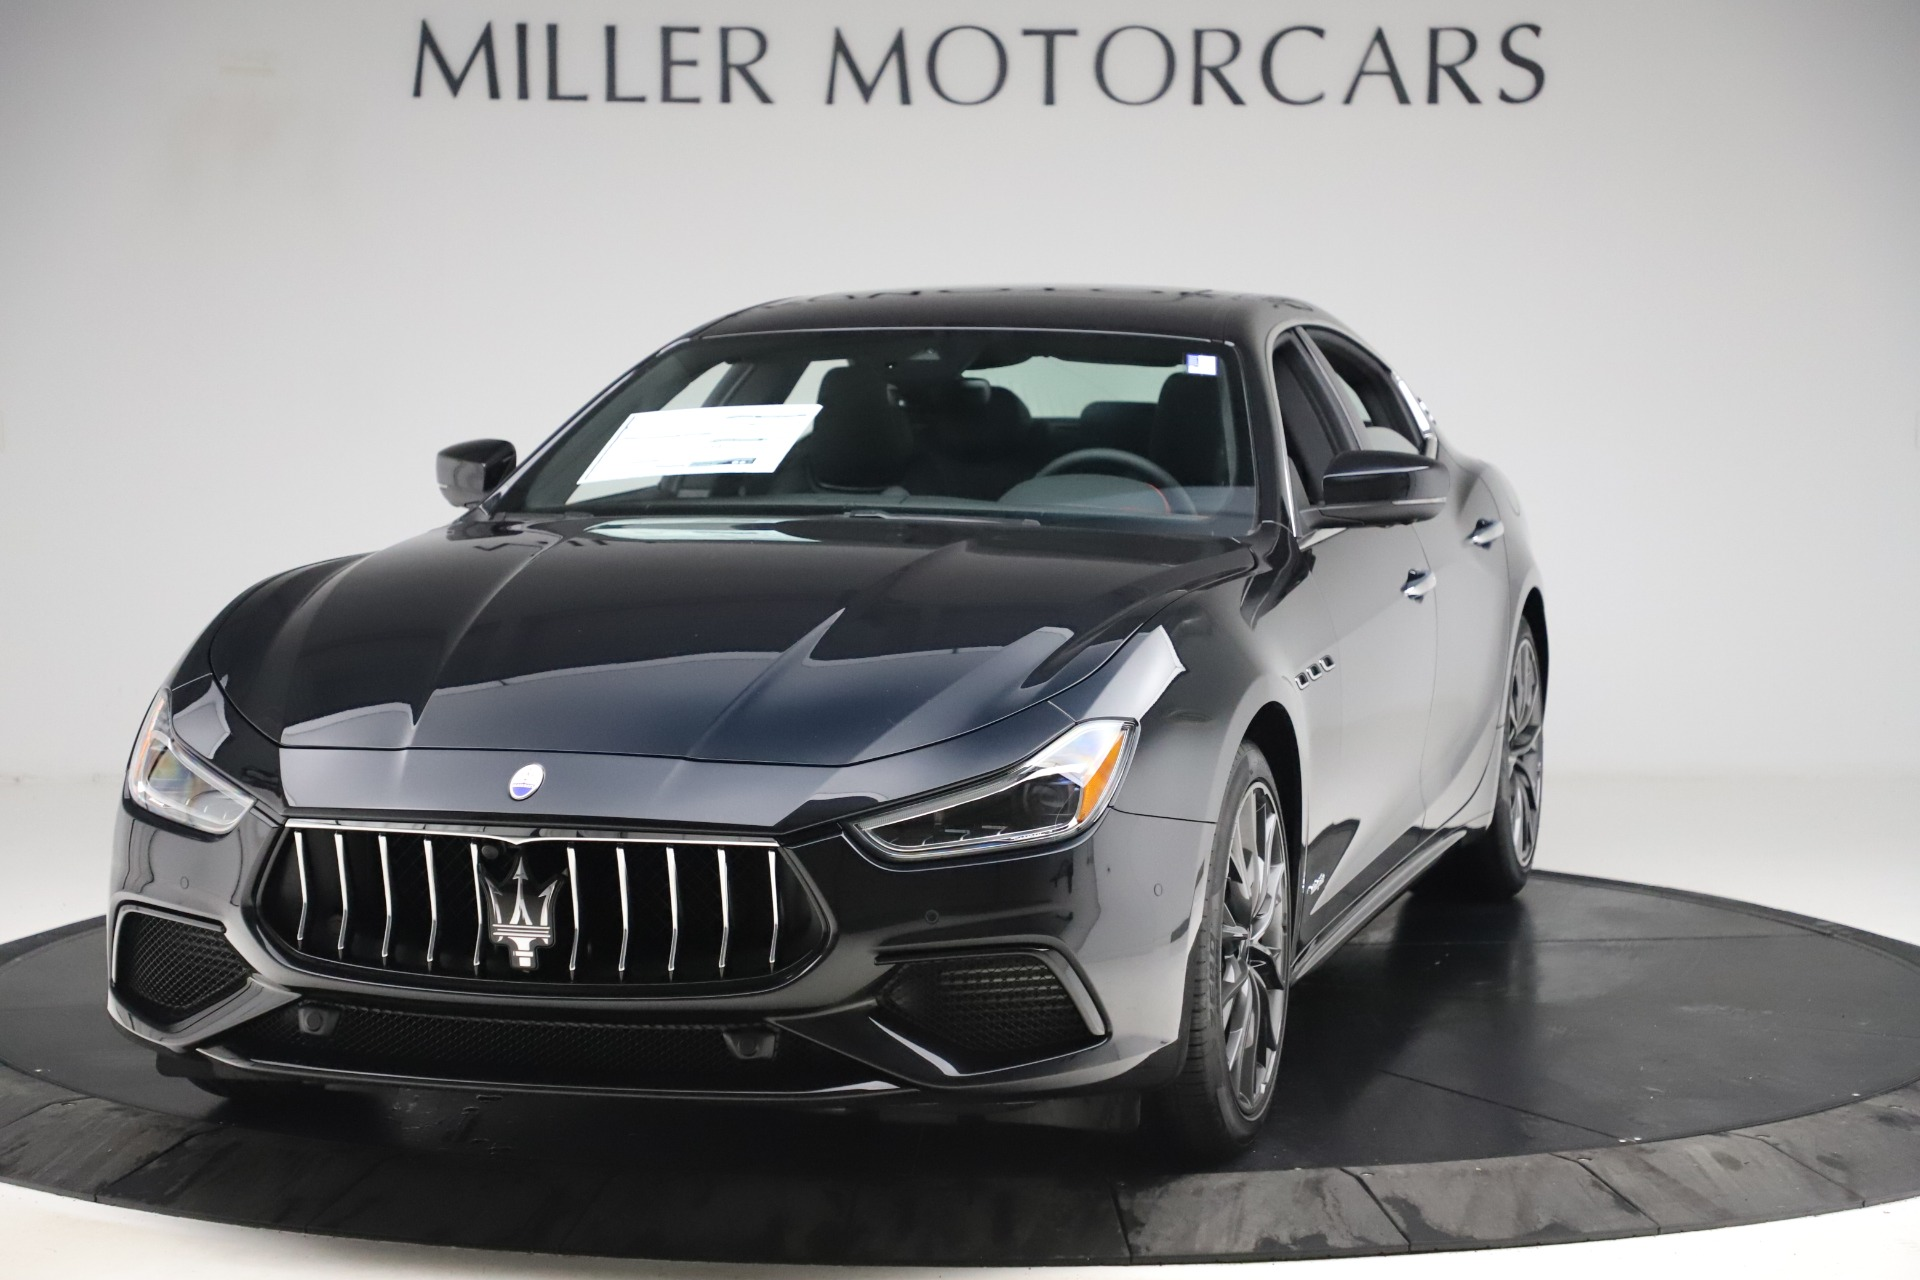 New 2019 Maserati Ghibli S Q4 GranSport for sale $99,905 at Bugatti of Greenwich in Greenwich CT 06830 1